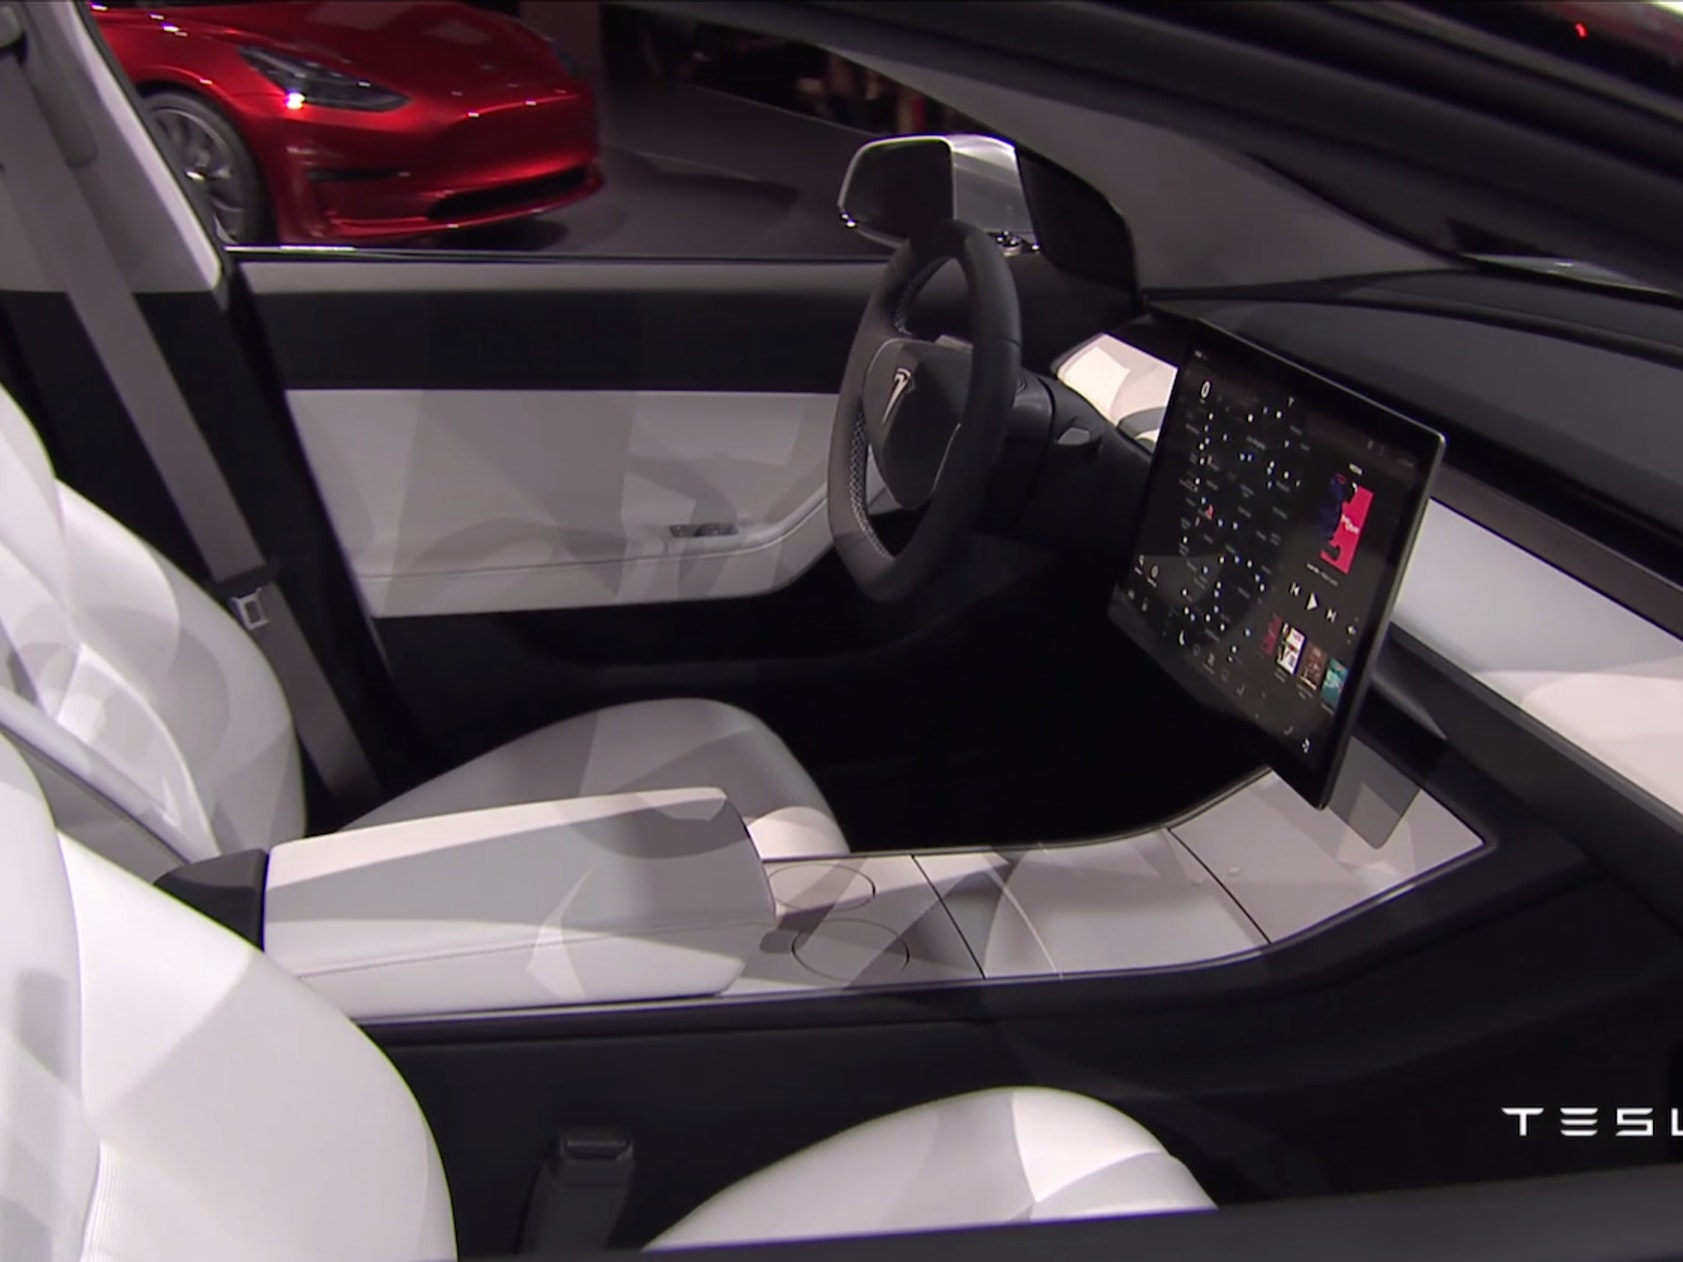 The Model 3's interior, as shown during its unveiling.